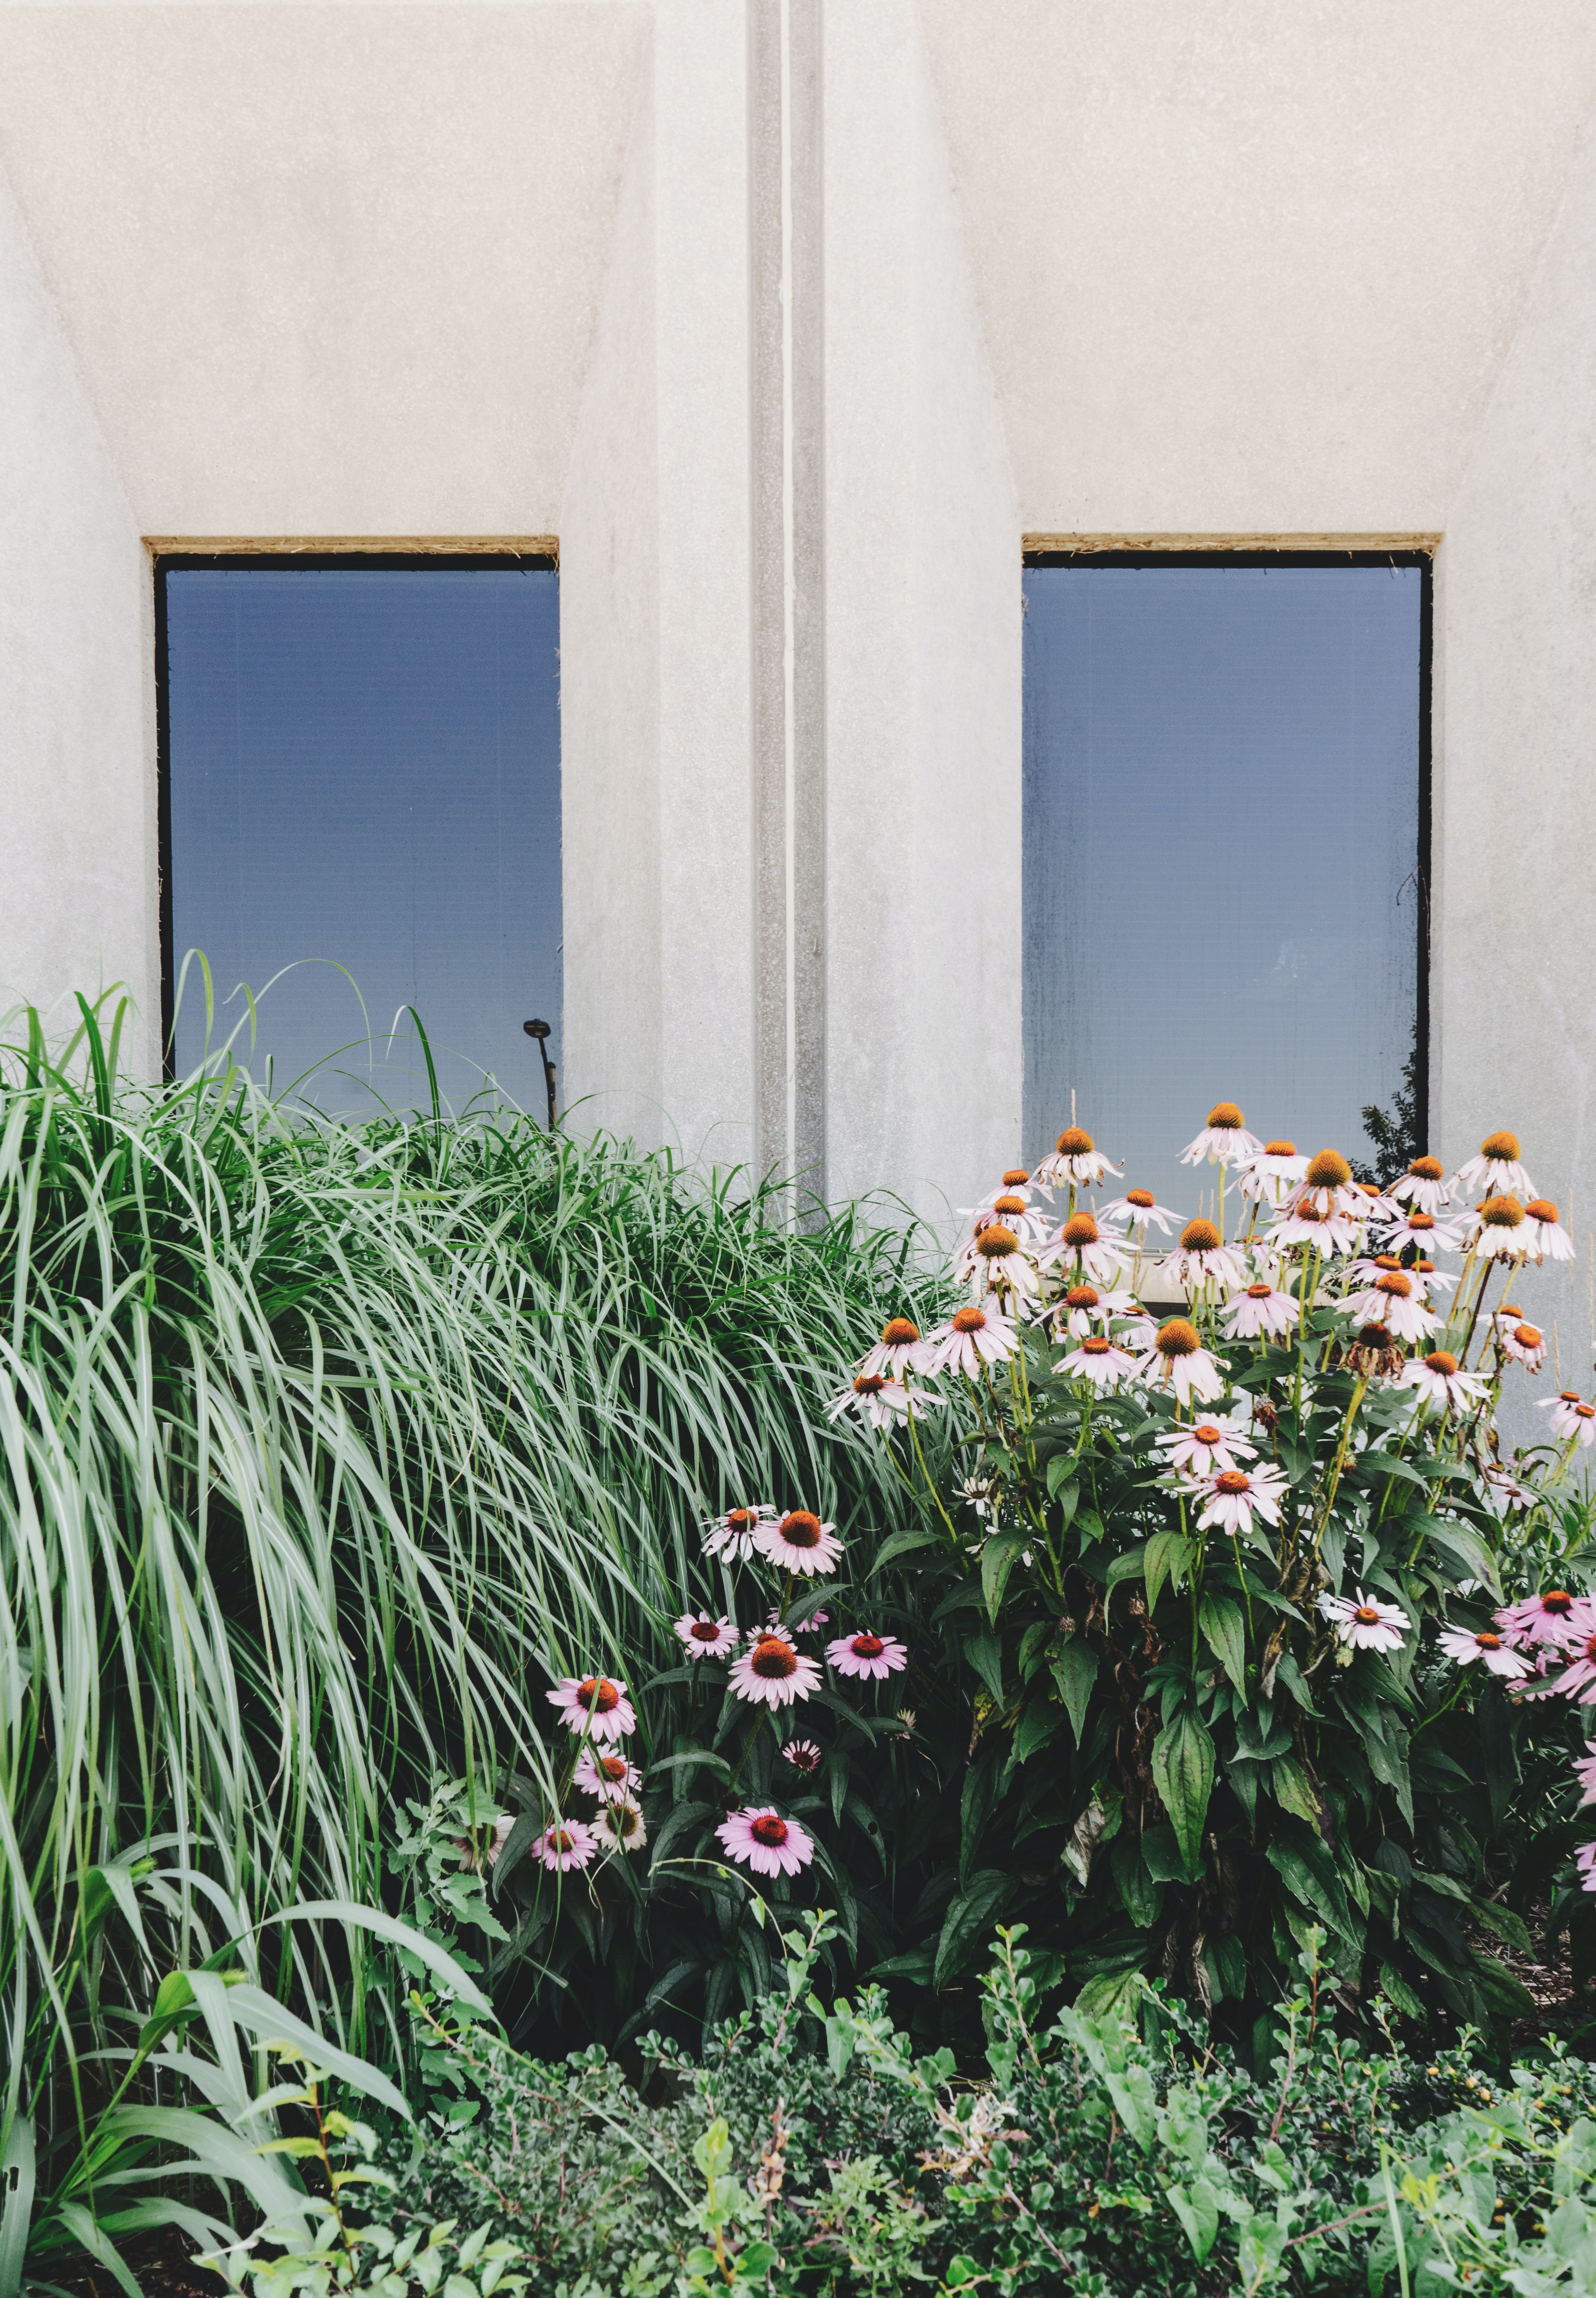 Plants and long grass outside window on white wall at Court House Block Inc